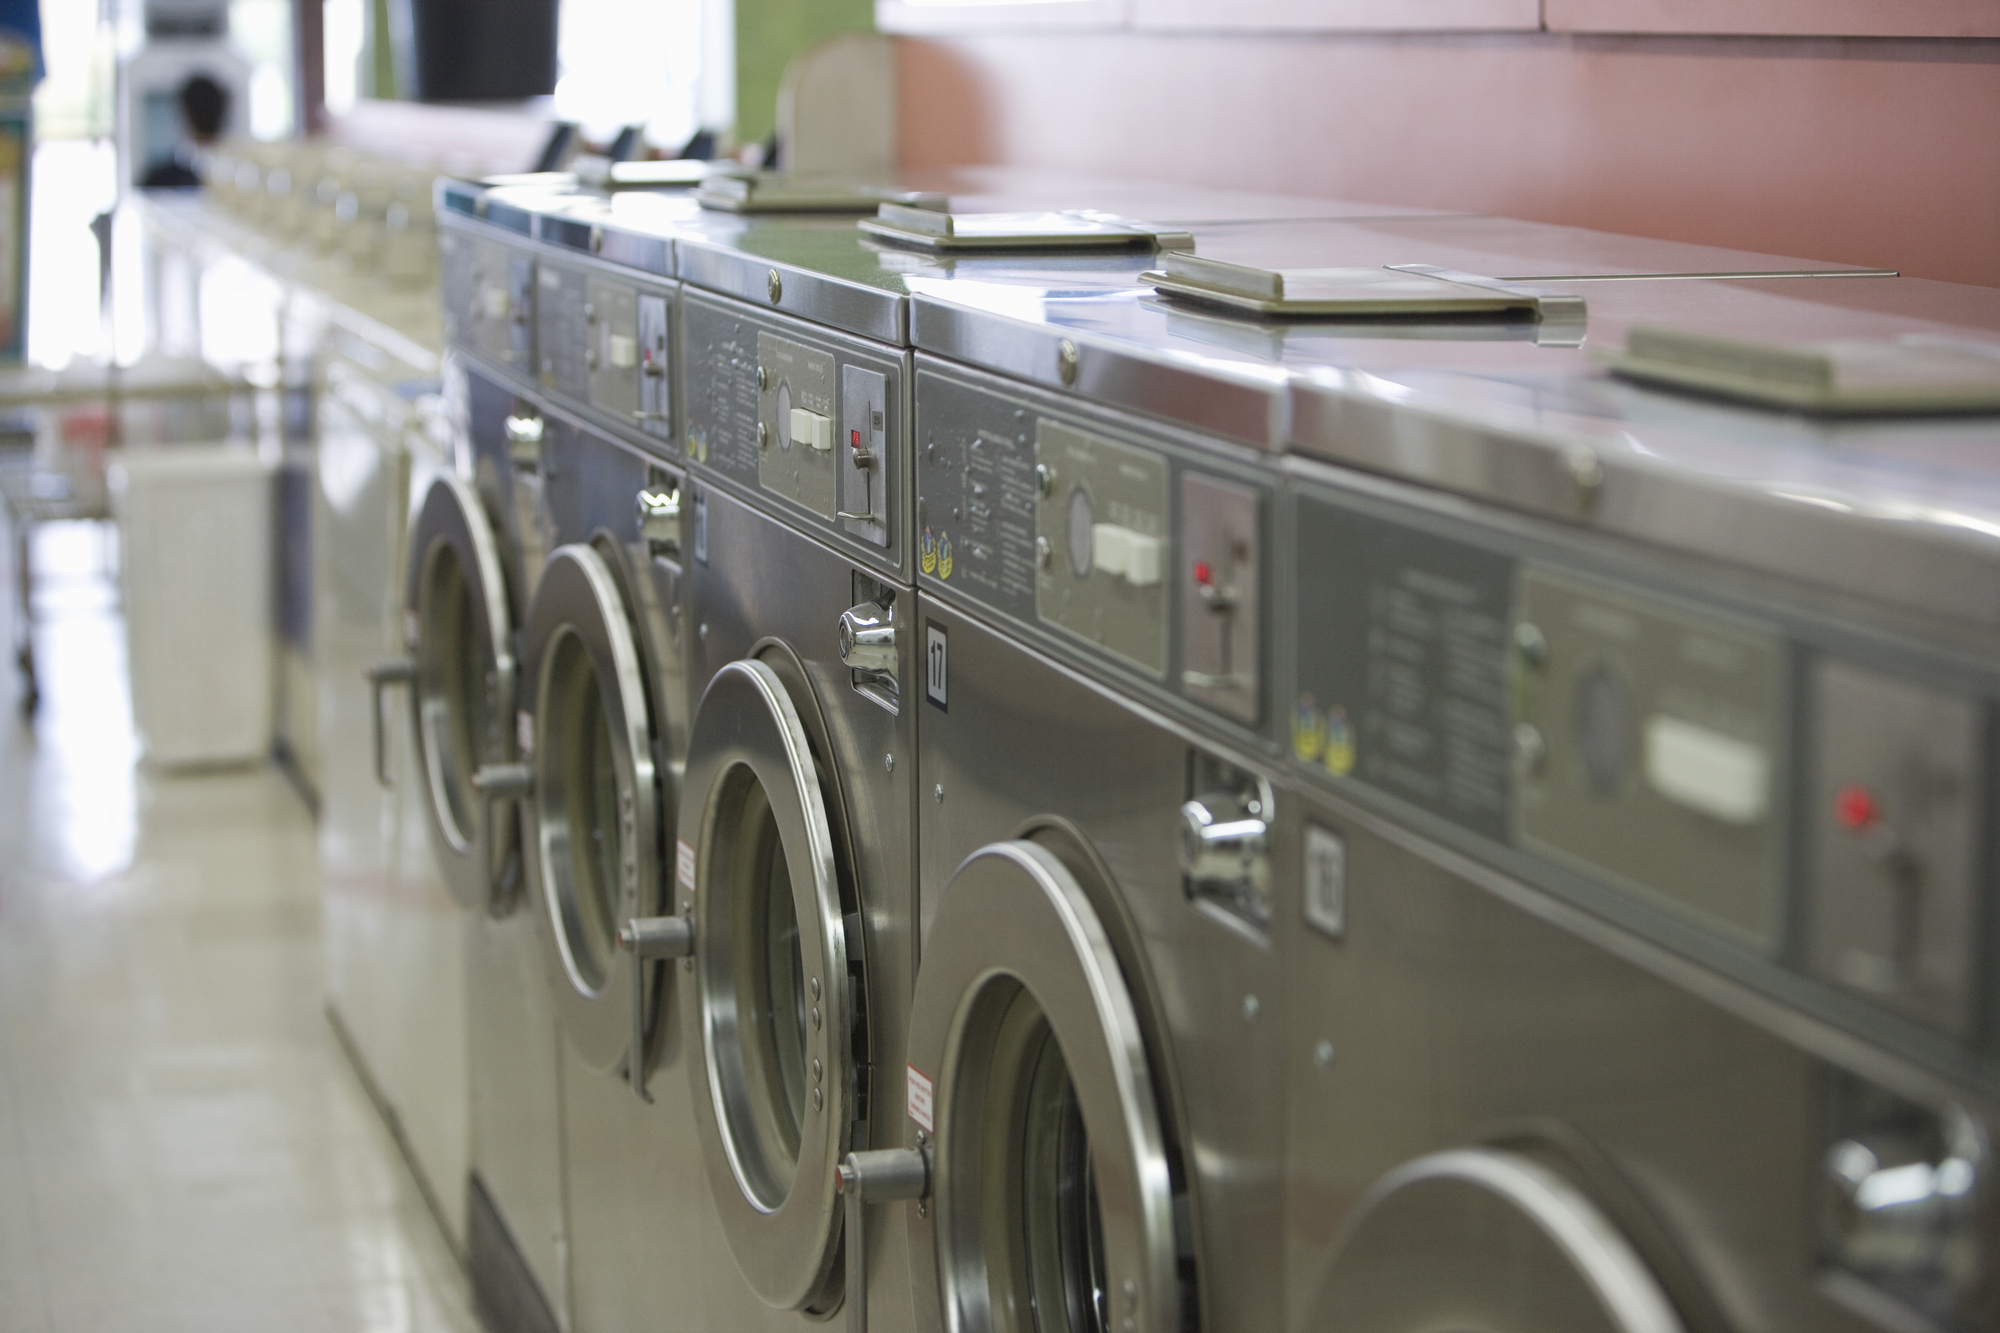 Row of commercial washing machines for laundry room leases at multifamily properties